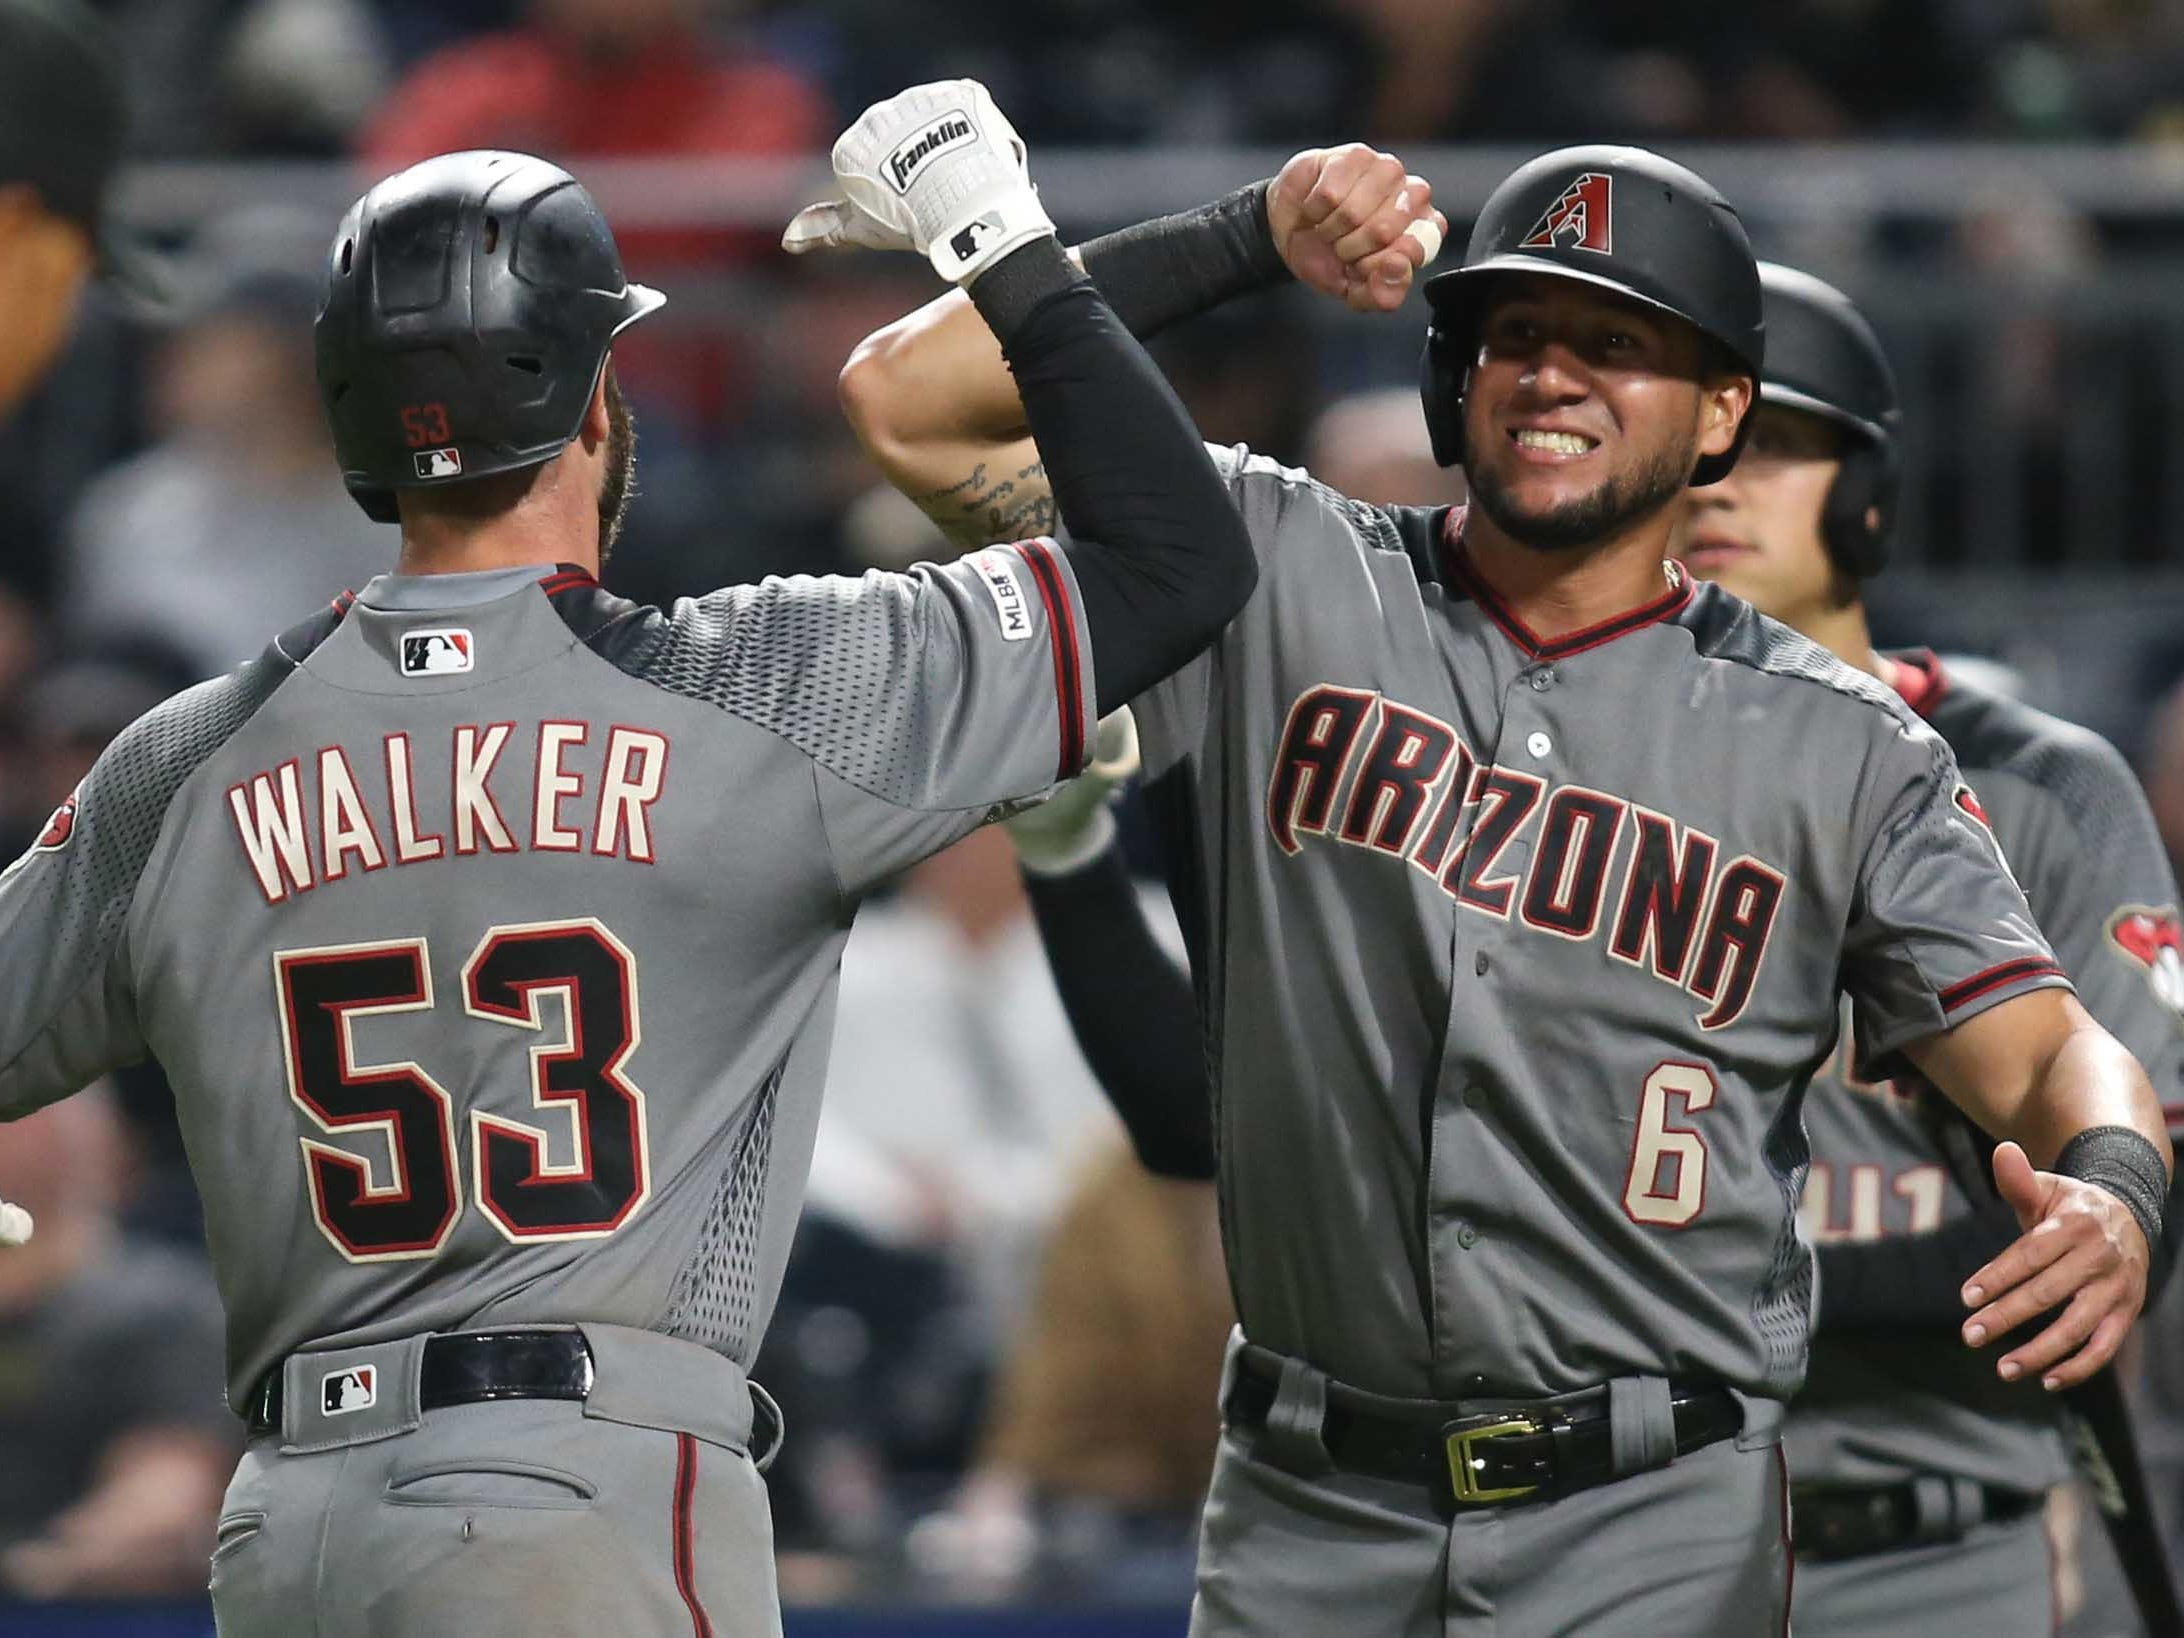 Apr 22, 2019; Pittsburgh, PA, USA;  Arizona Diamondbacks first baseman Christian Walker (53) celebrates his two run home run with left fielder David Peralta (6) against the Pittsburgh Pirates during the seventh inning at PNC Park.